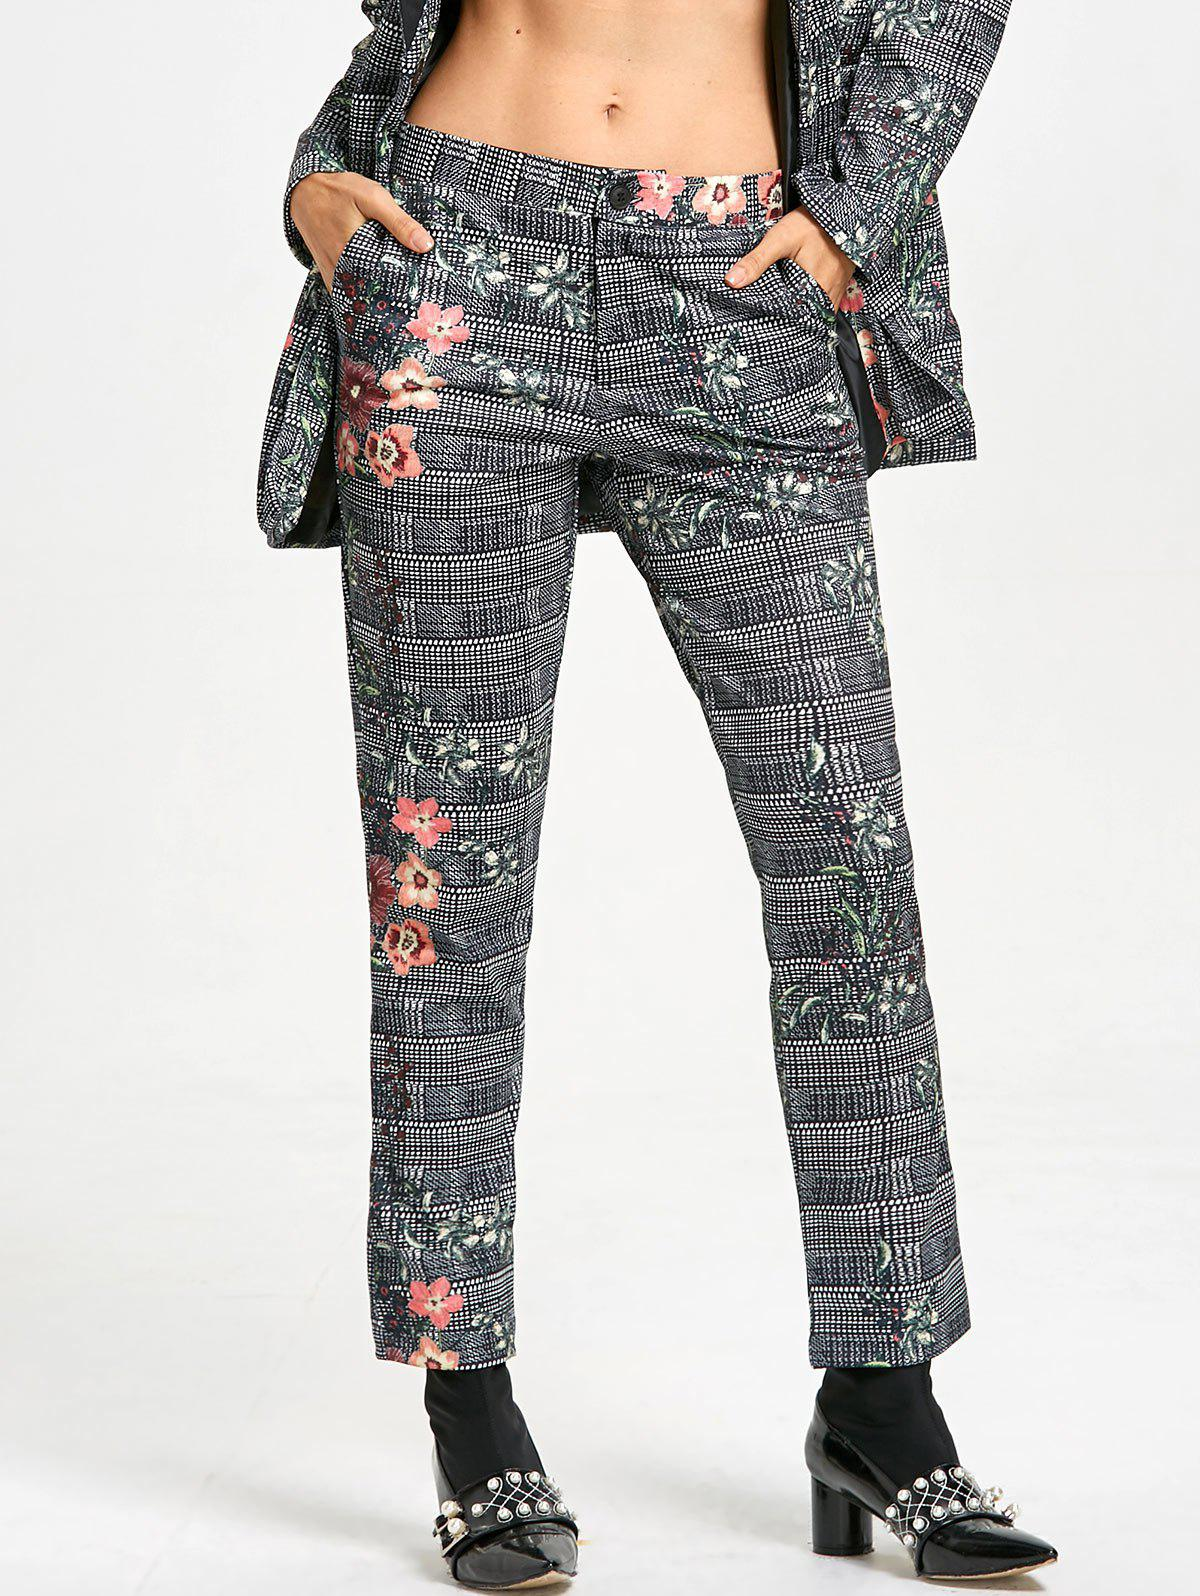 Zipper Fly Plaid Flower Print Pants - COLORMIX S